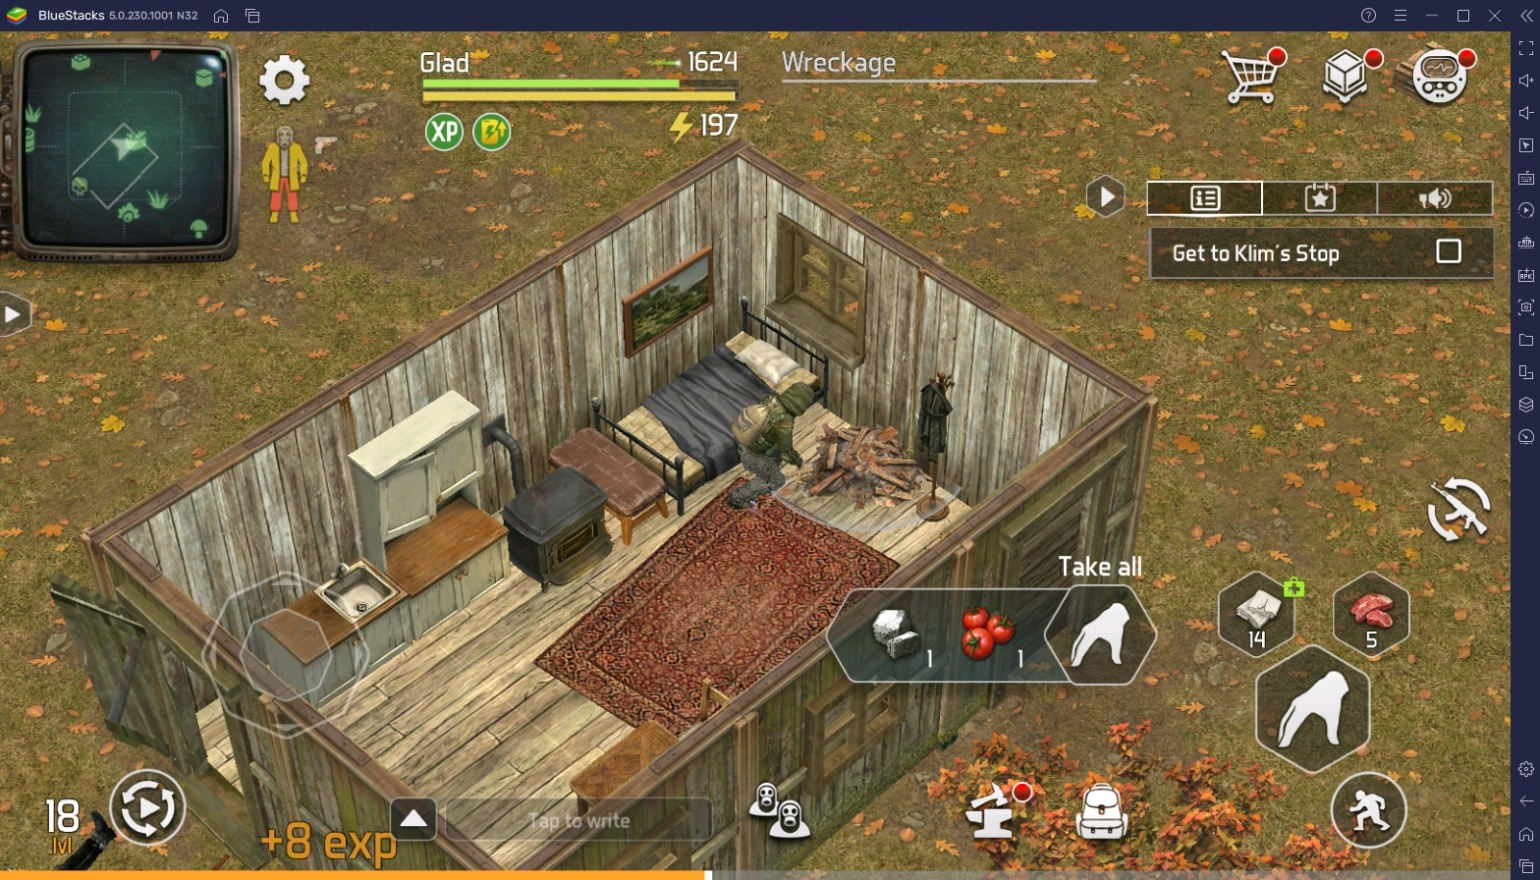 Dawn of Zombies Tips & Tricks To Help You